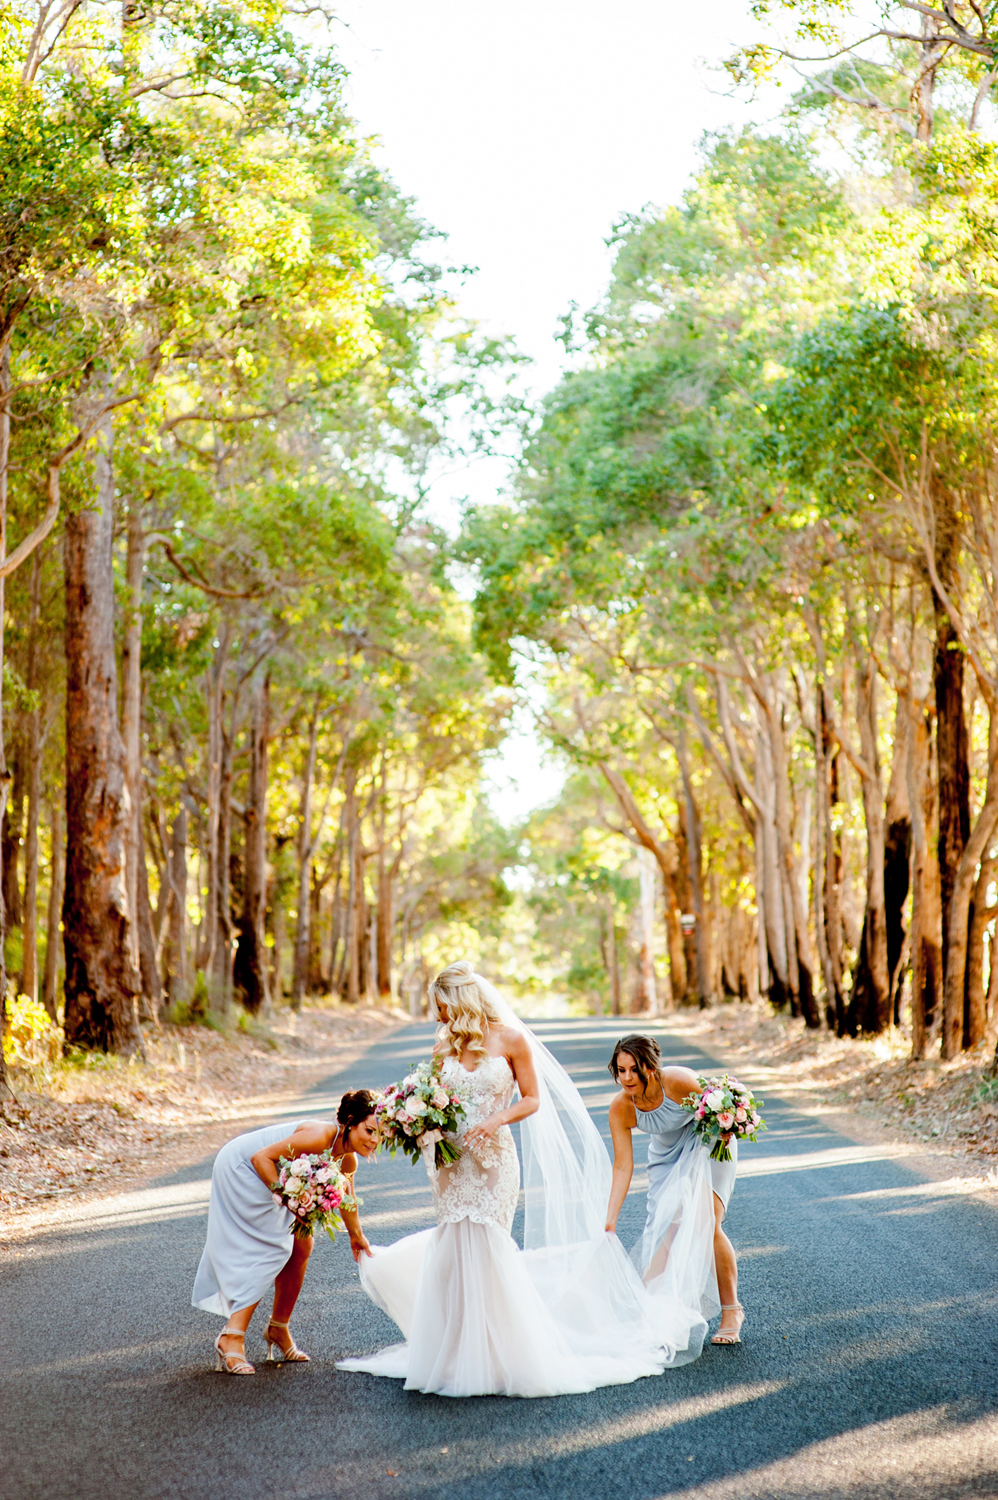 Perth Wedding Photographer Deanna Whyte Photography Natural Photos (46)